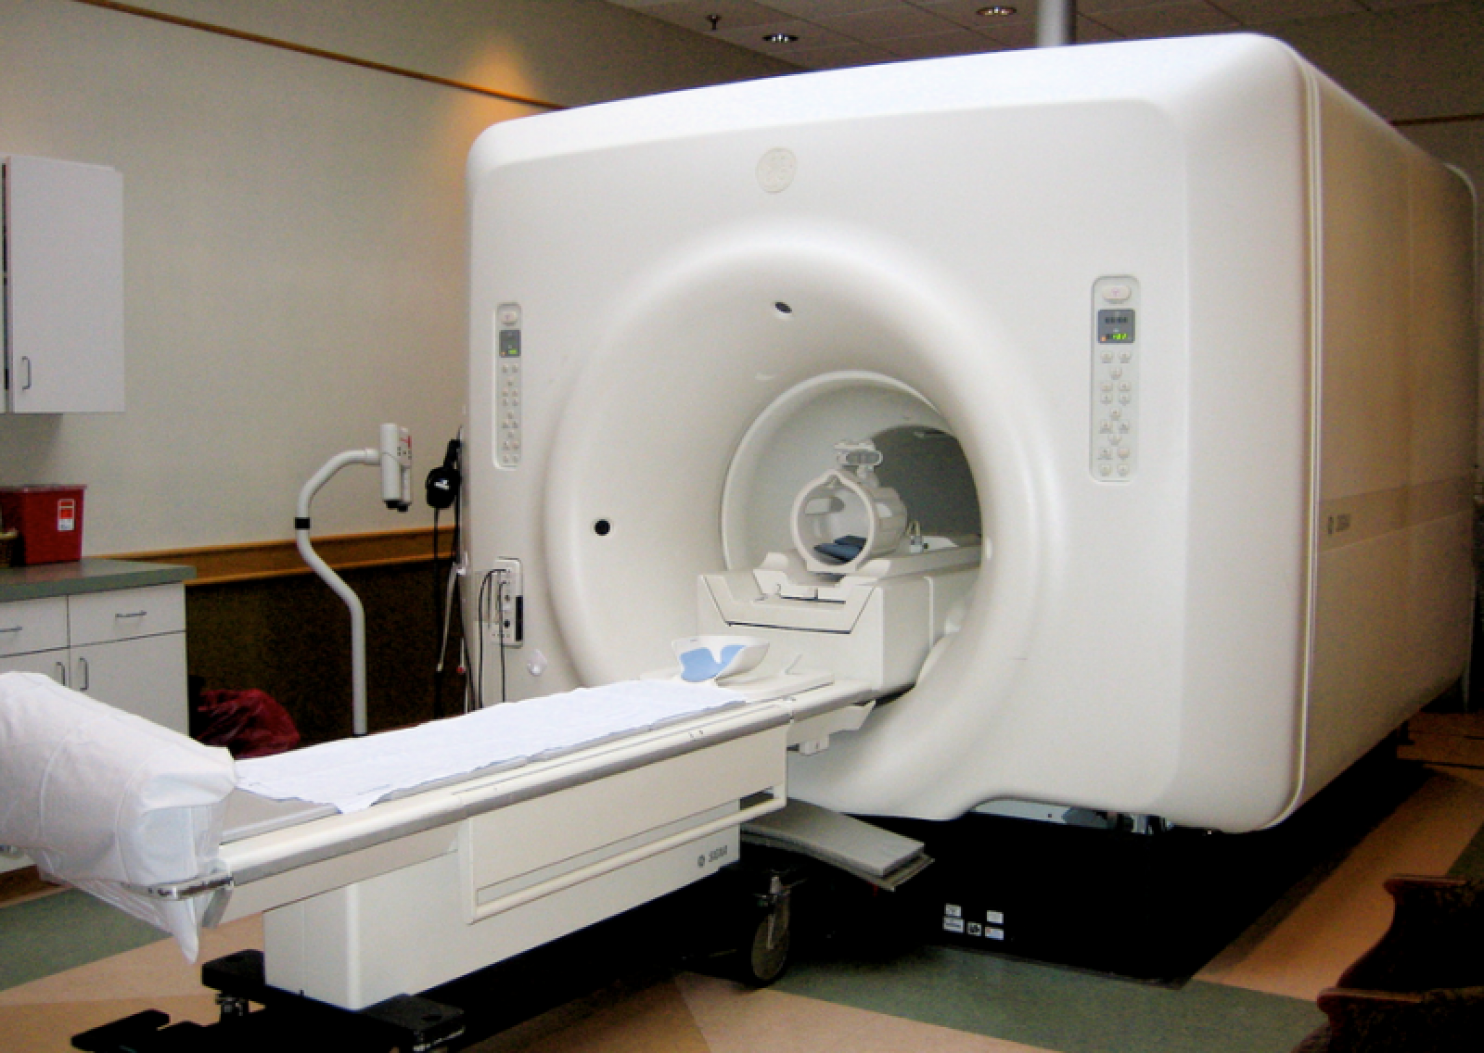 5adfef1de7b996117ab8f96019698109 - How Much Does It Cost To Get A Brain Mri